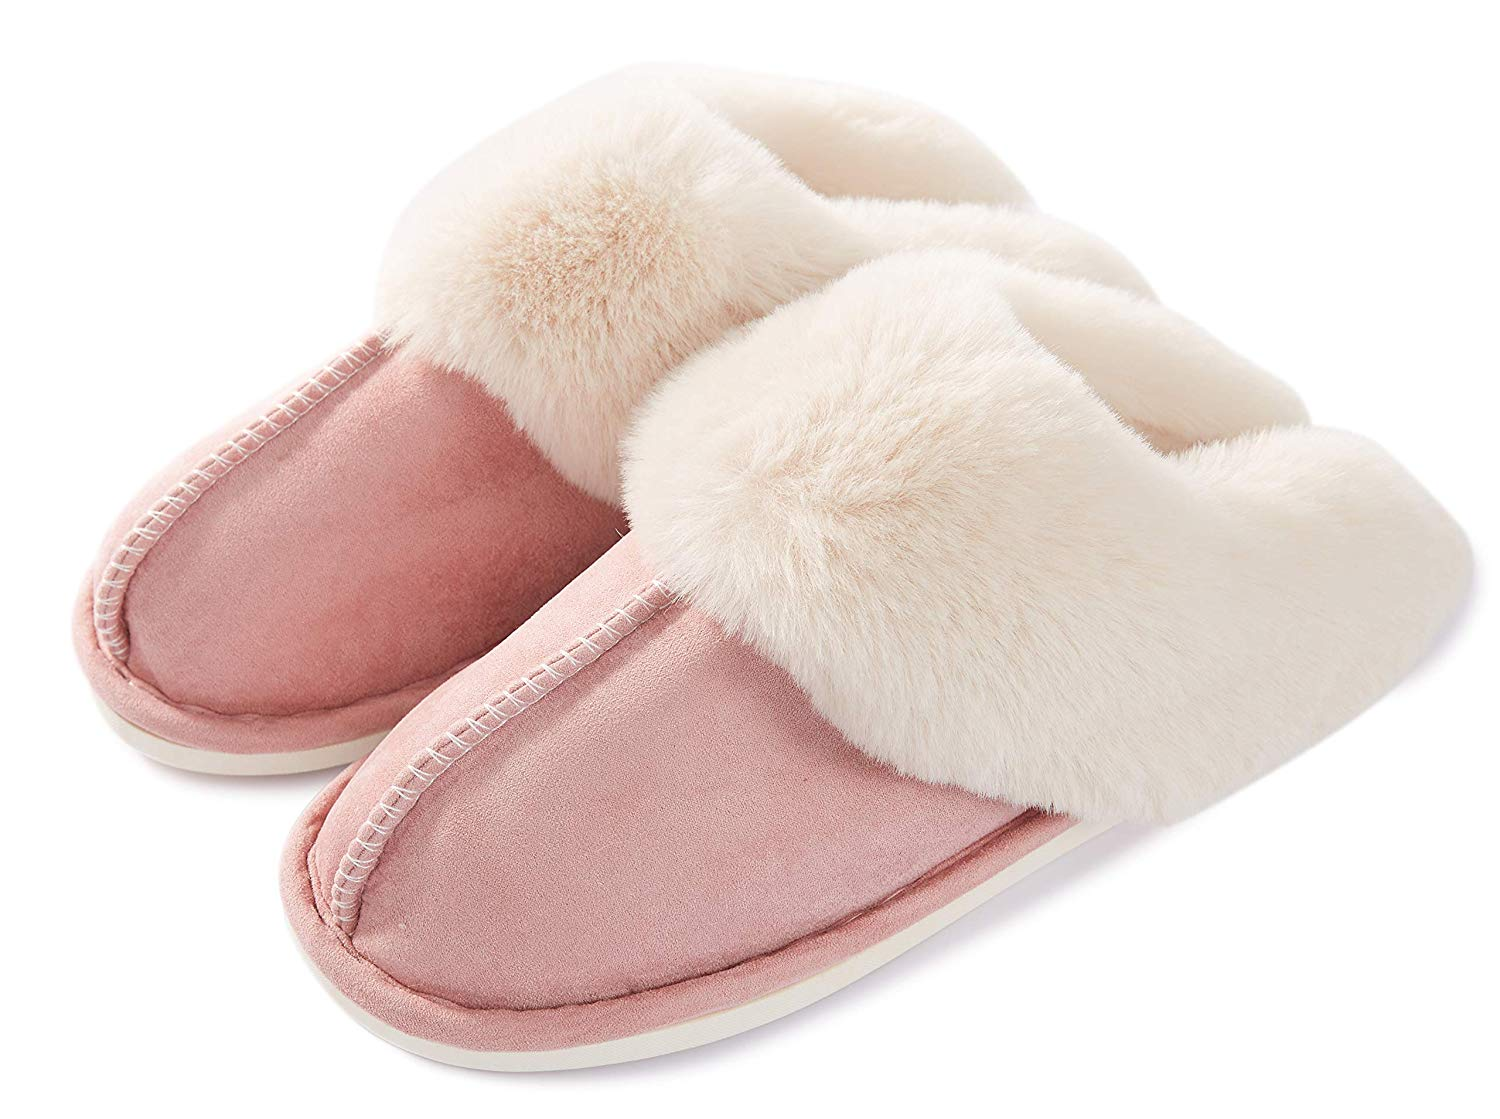 Donpapa  | Womens Slippers Memory Foam |  $18.99 - $19.99